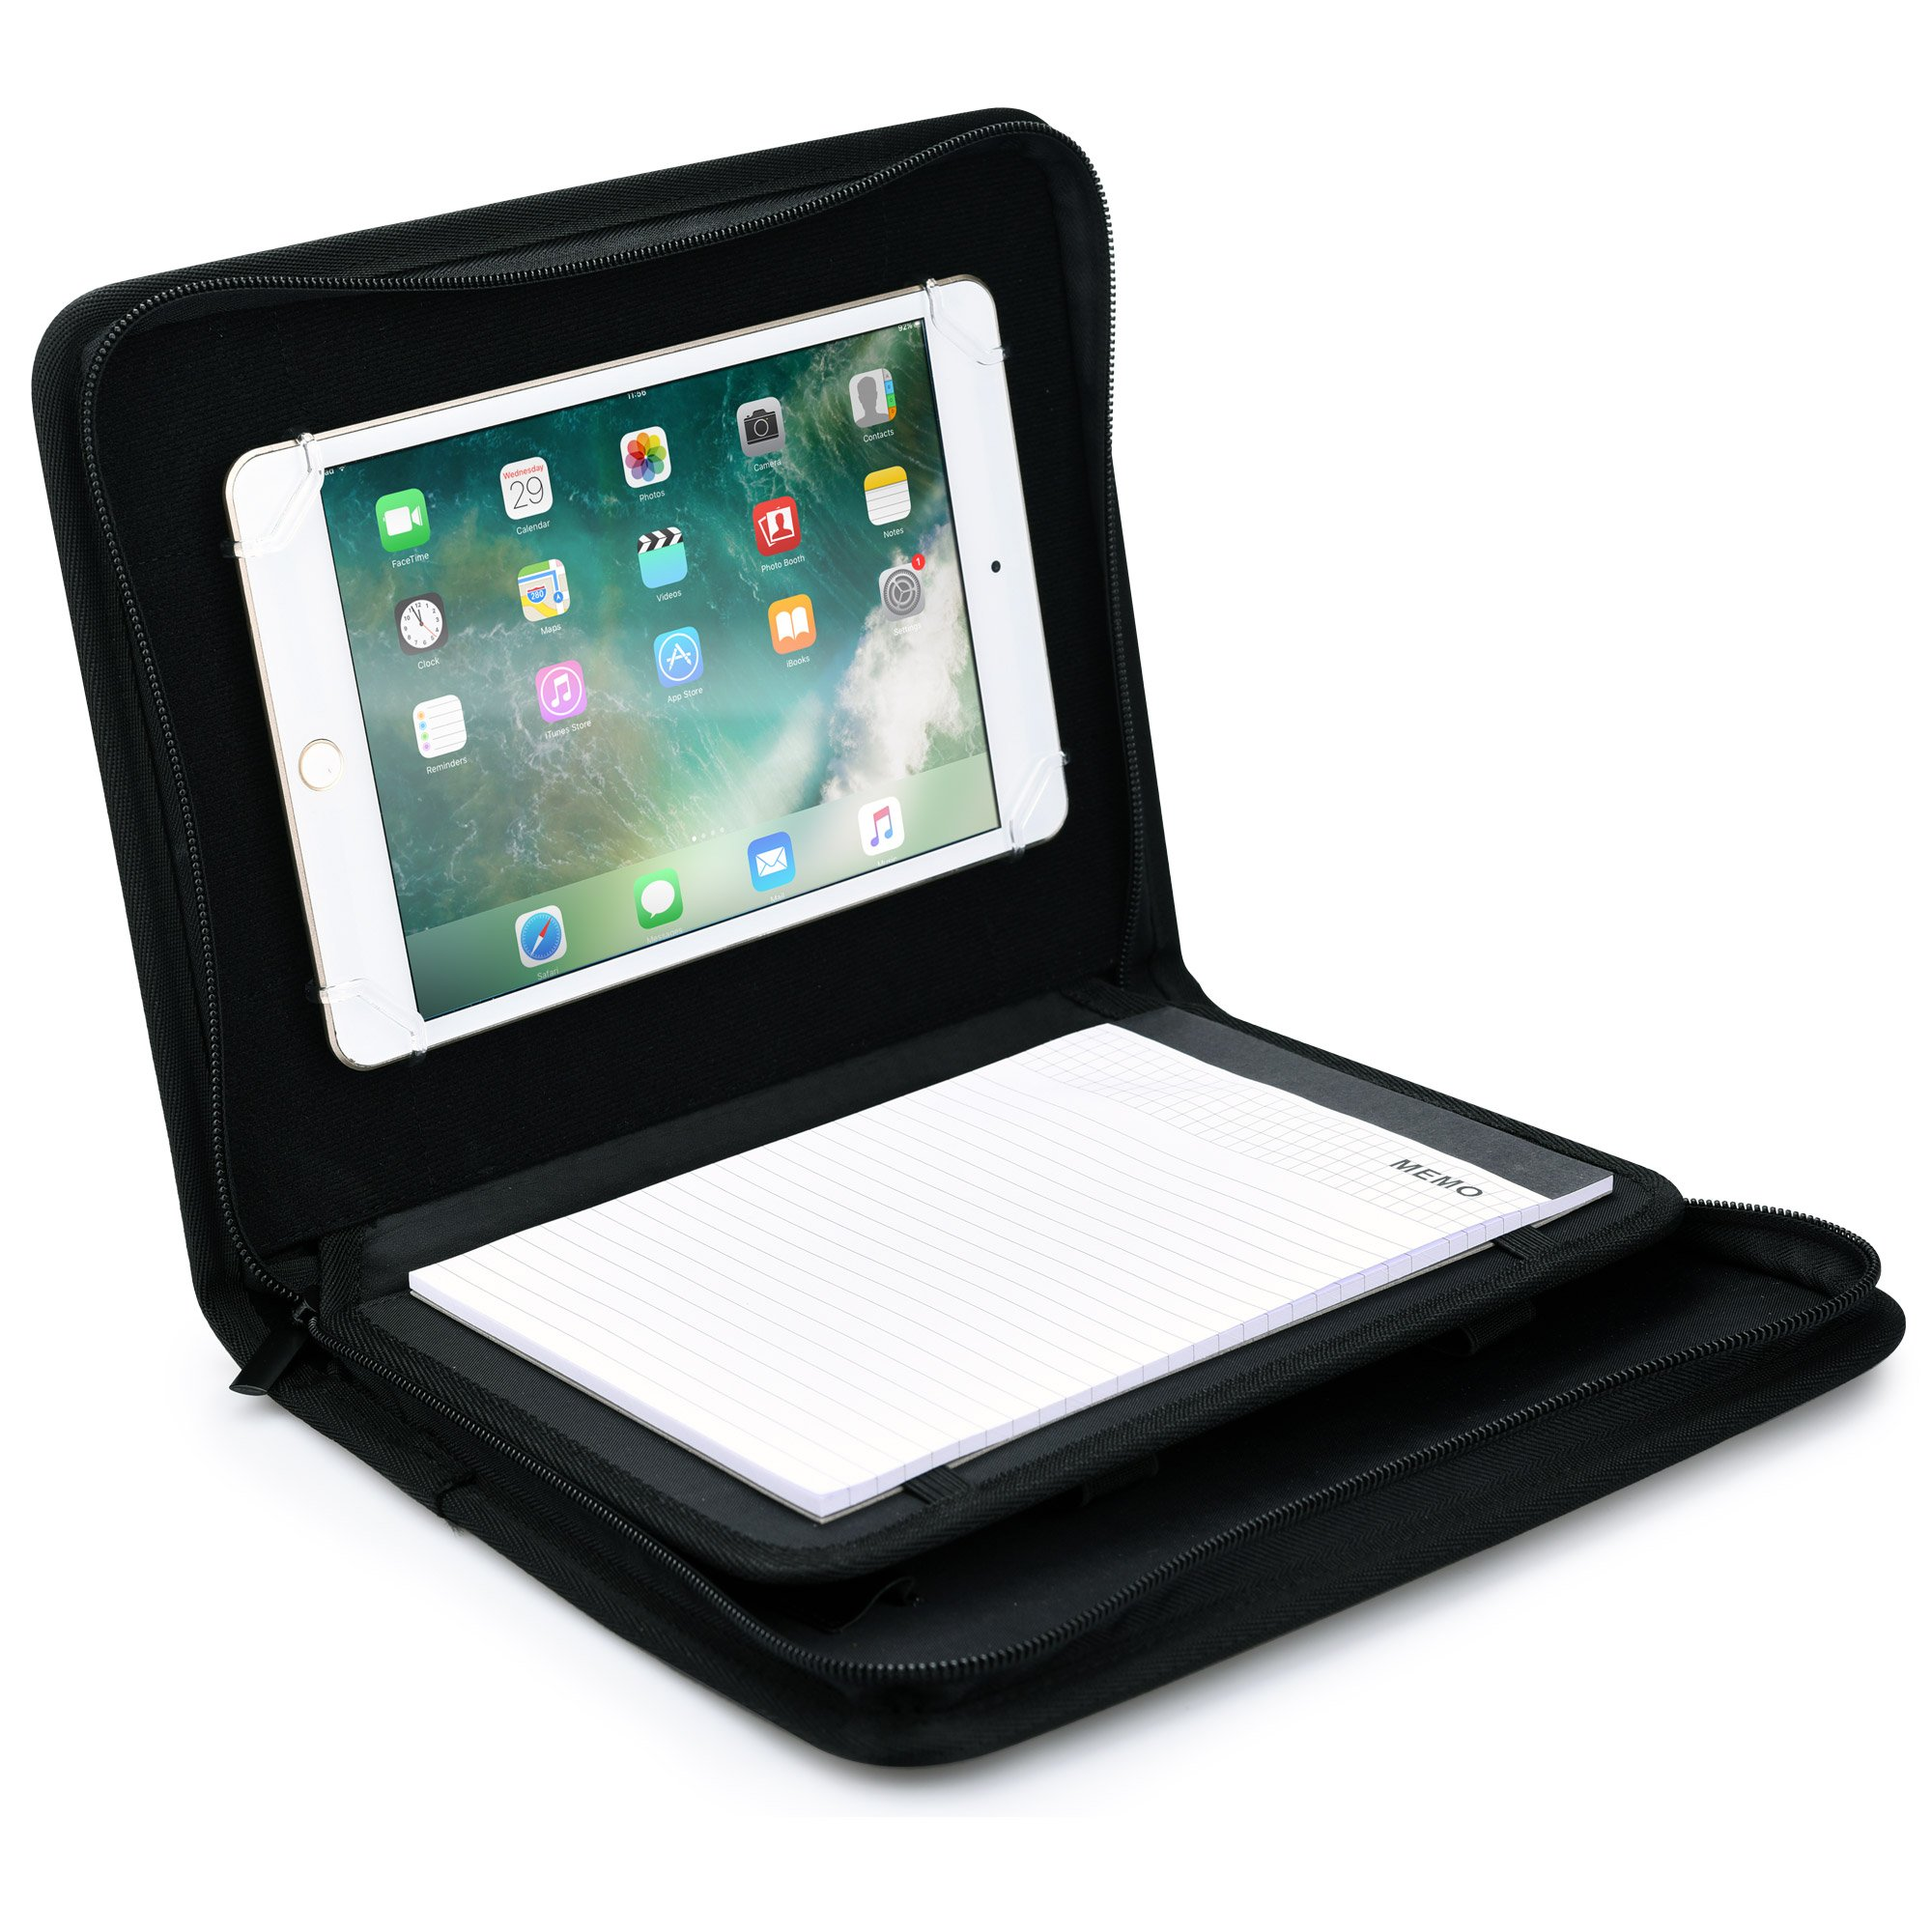 COOPER BIZMATE Padfolio Organizer case compatible with Apple iPad Mini 4 3 2 1 | Business Executive Tablet Portfolio with A5 Notepad Paper Pad | Pen Holder, Card Pockets (Black)